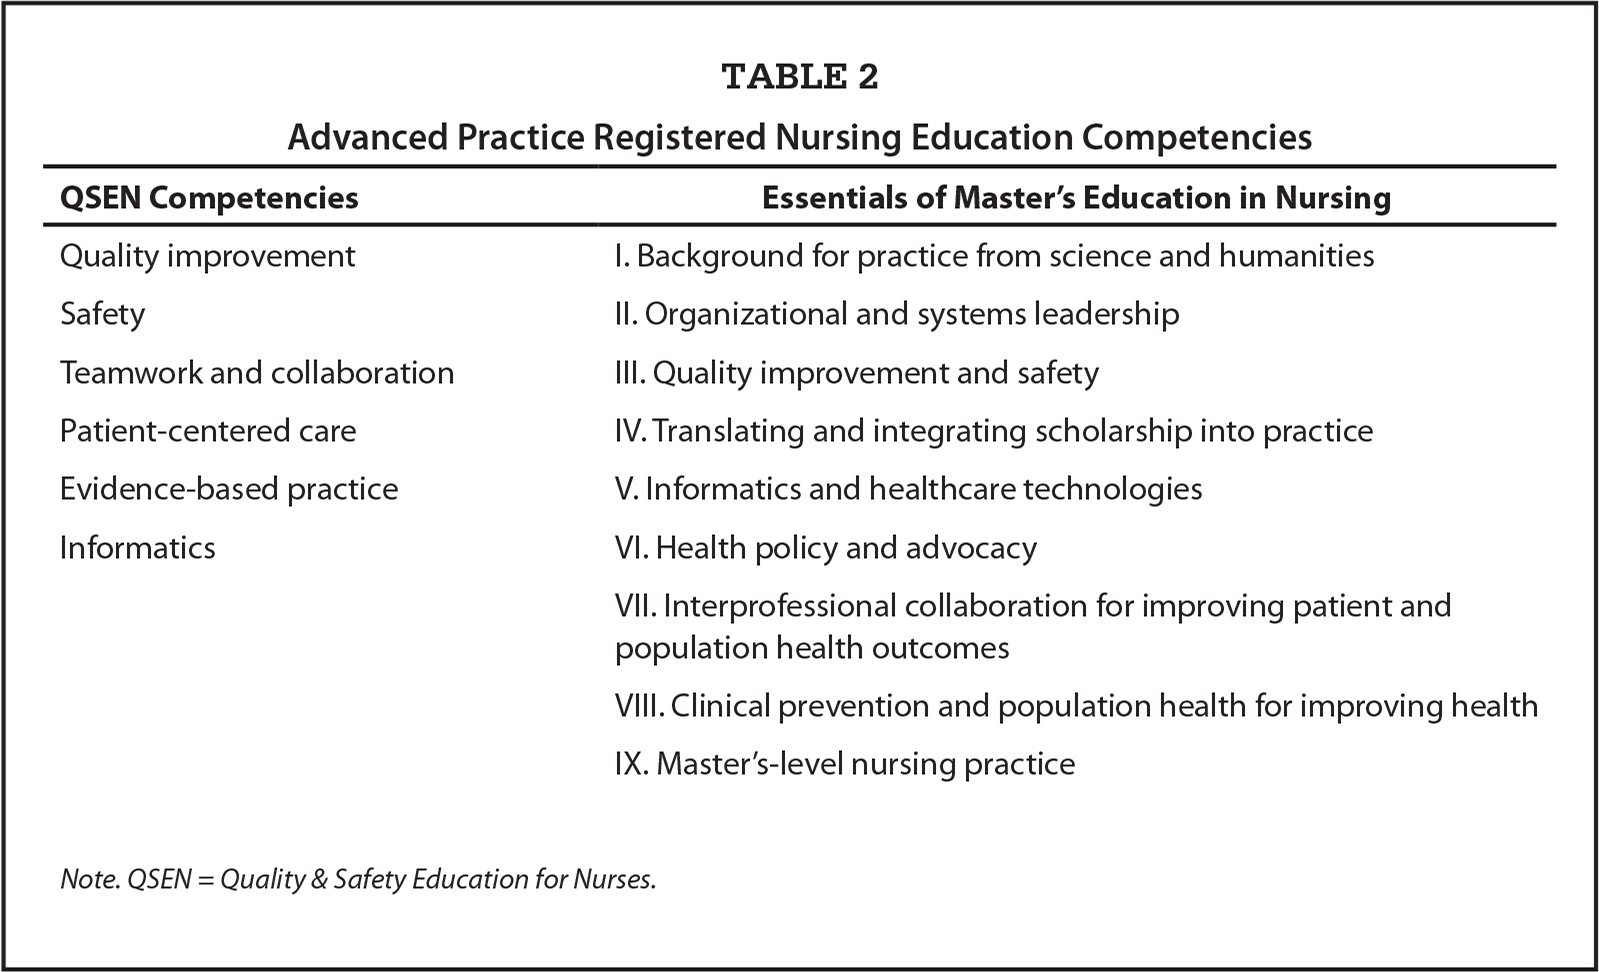 Advanced Practice Registered Nursing Education Competencies